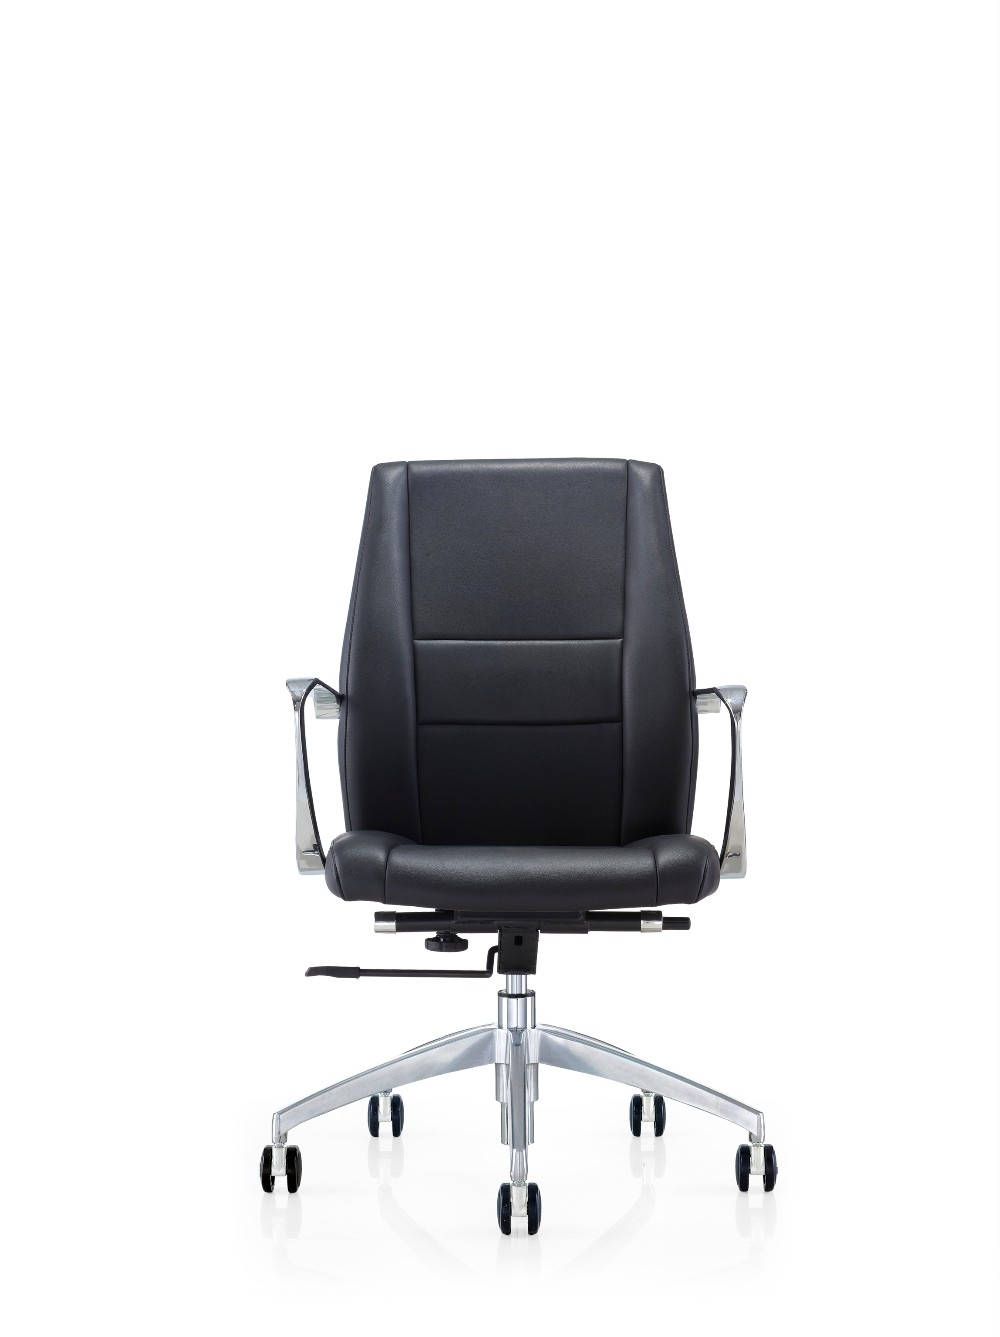 2016 office chair for heavy people buy office chair